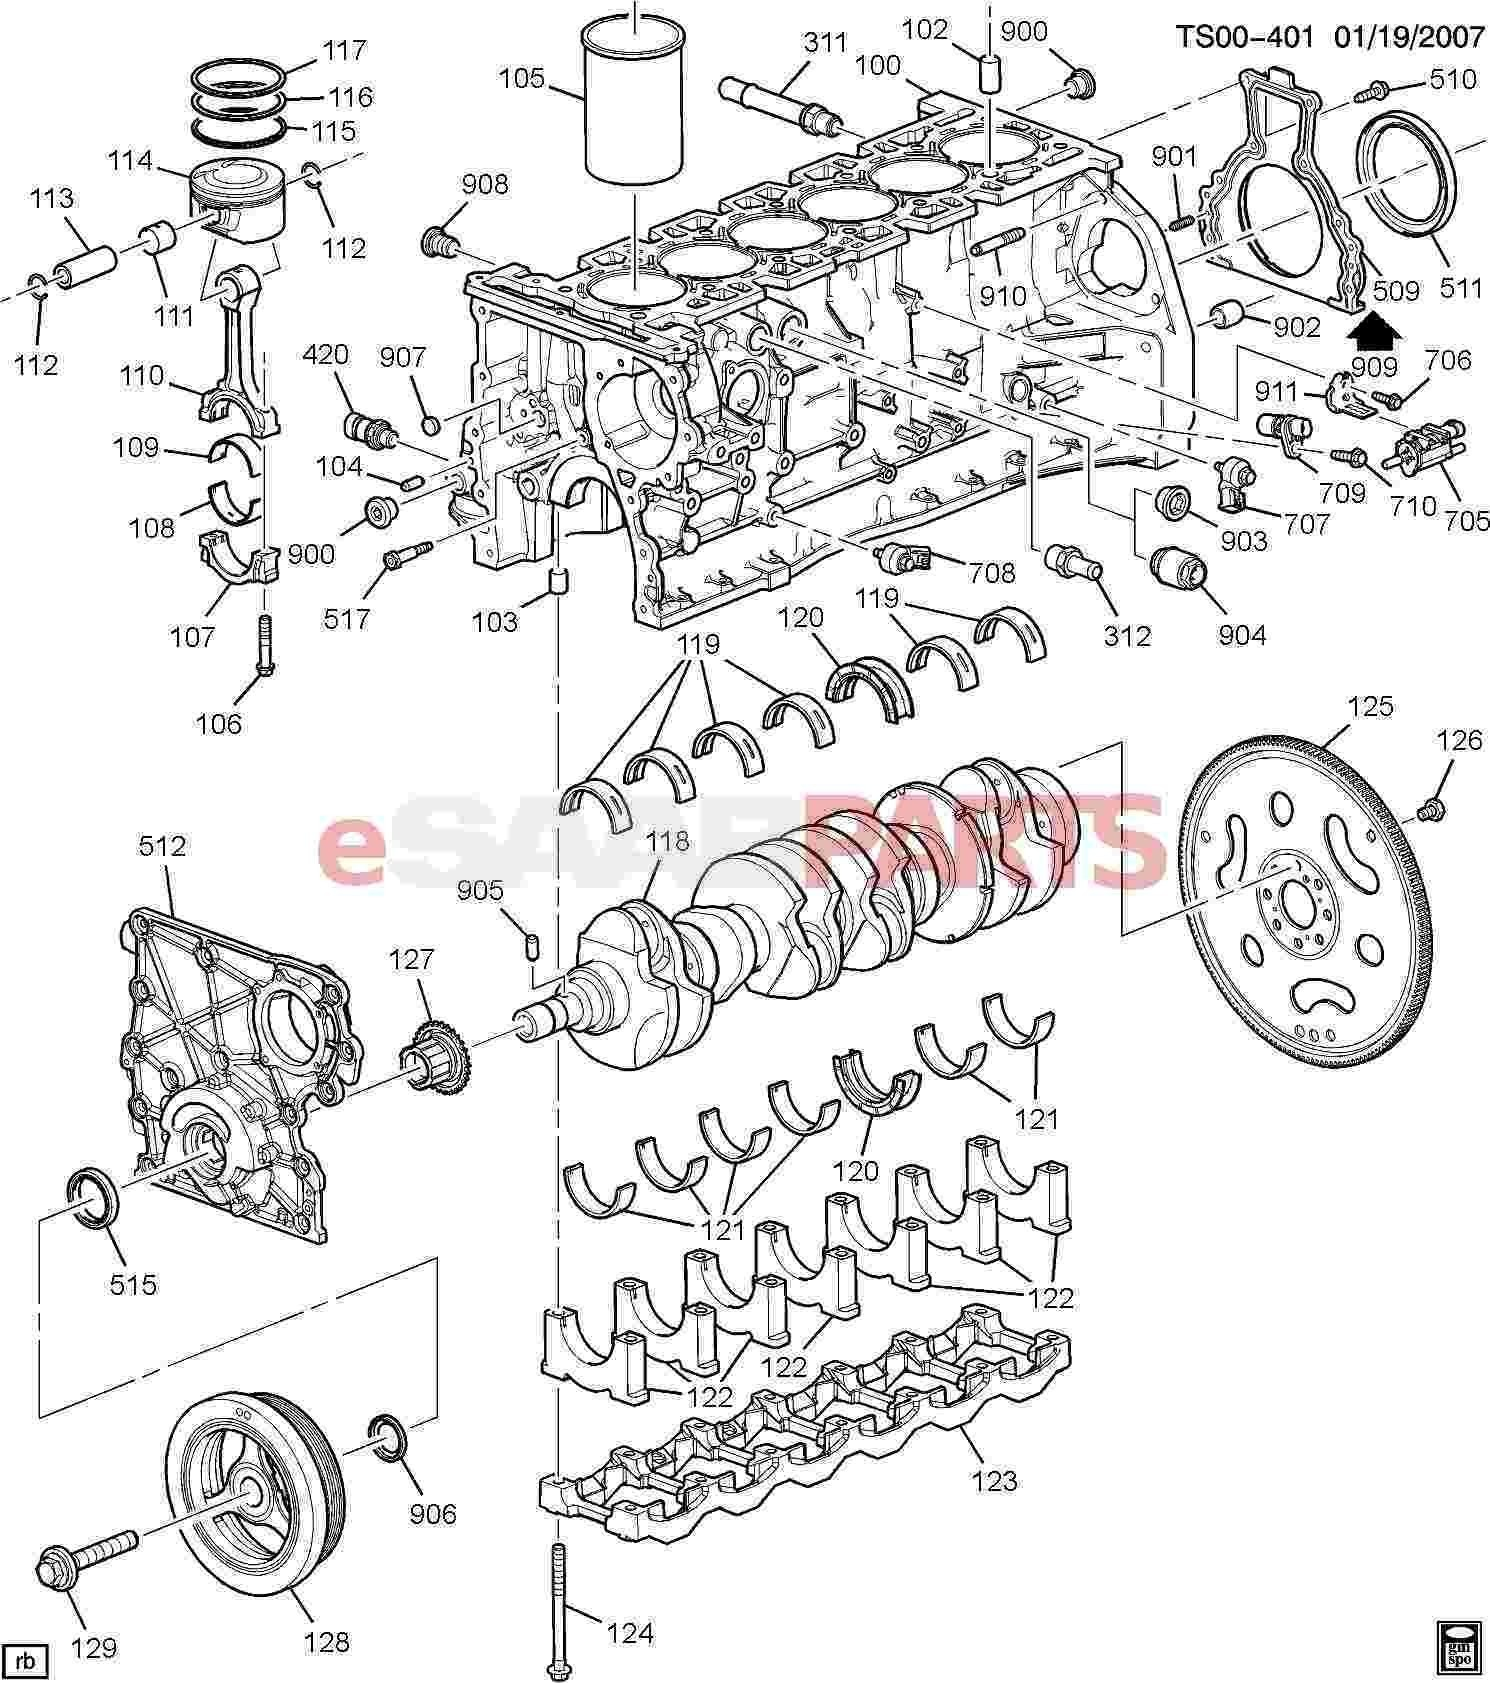 2001 Chevy Blazer Engine Diagram 2001 Blazer Engine Diagram Of 2001 Chevy Blazer Engine Diagram How to Install Replace Manifold Absolute Pressure Sensor Map 1996 99